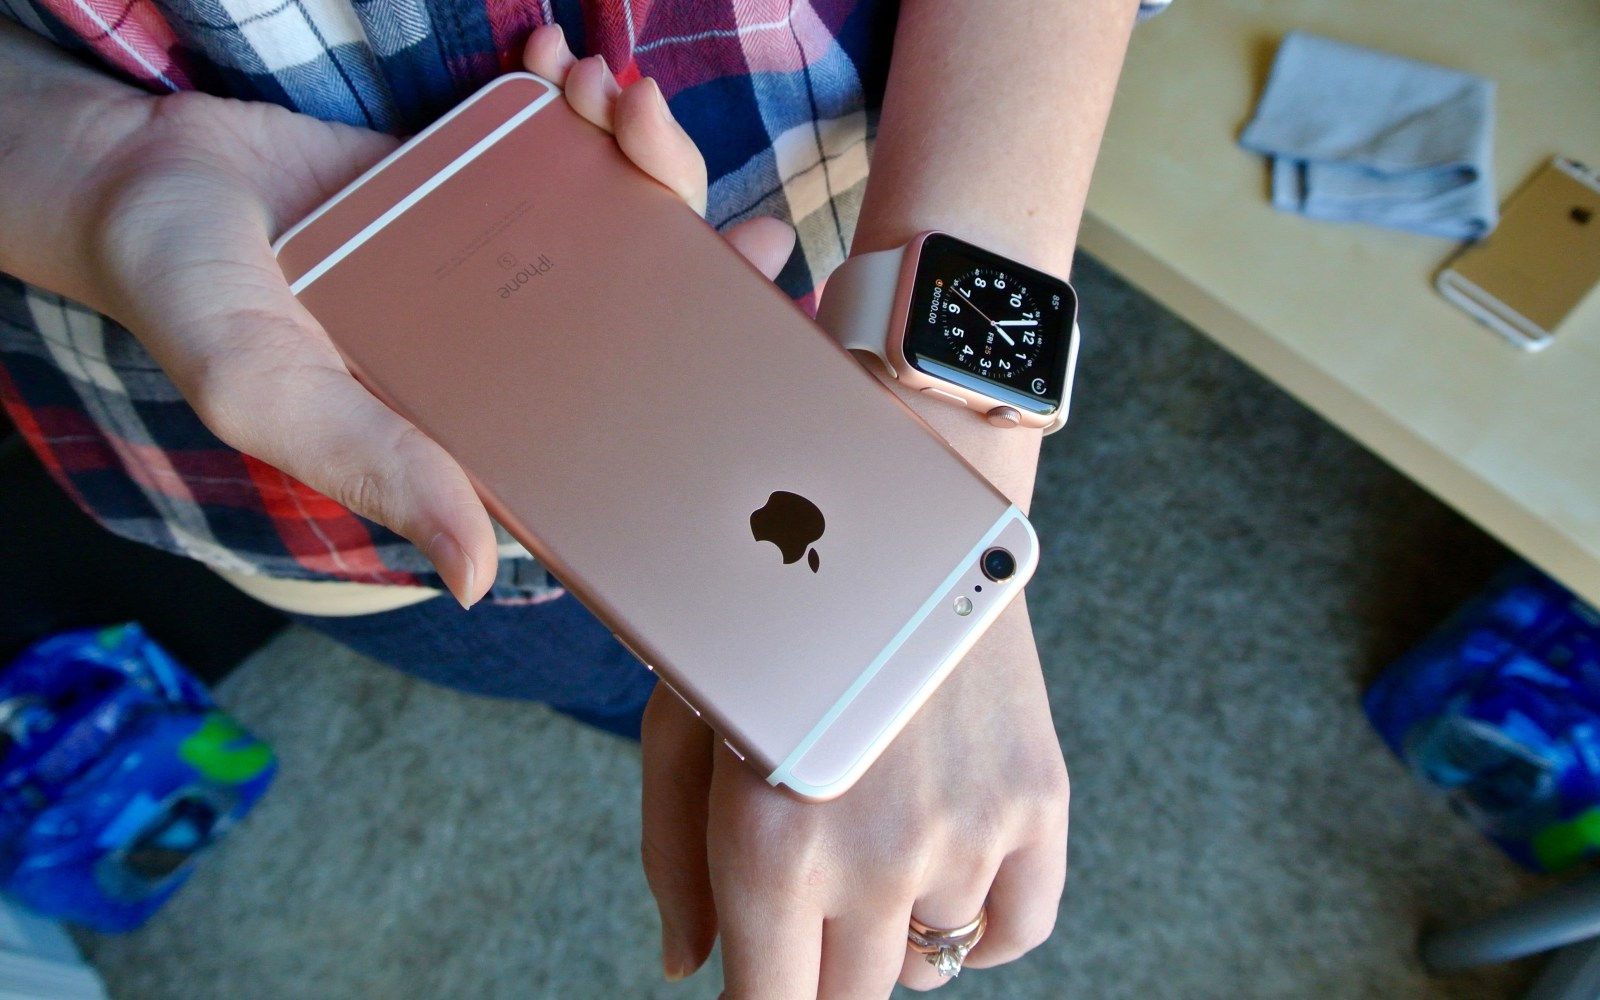 Select Apple Stores offering $50 discount on iPhone + Apple Watch purchases, but may not be best deal